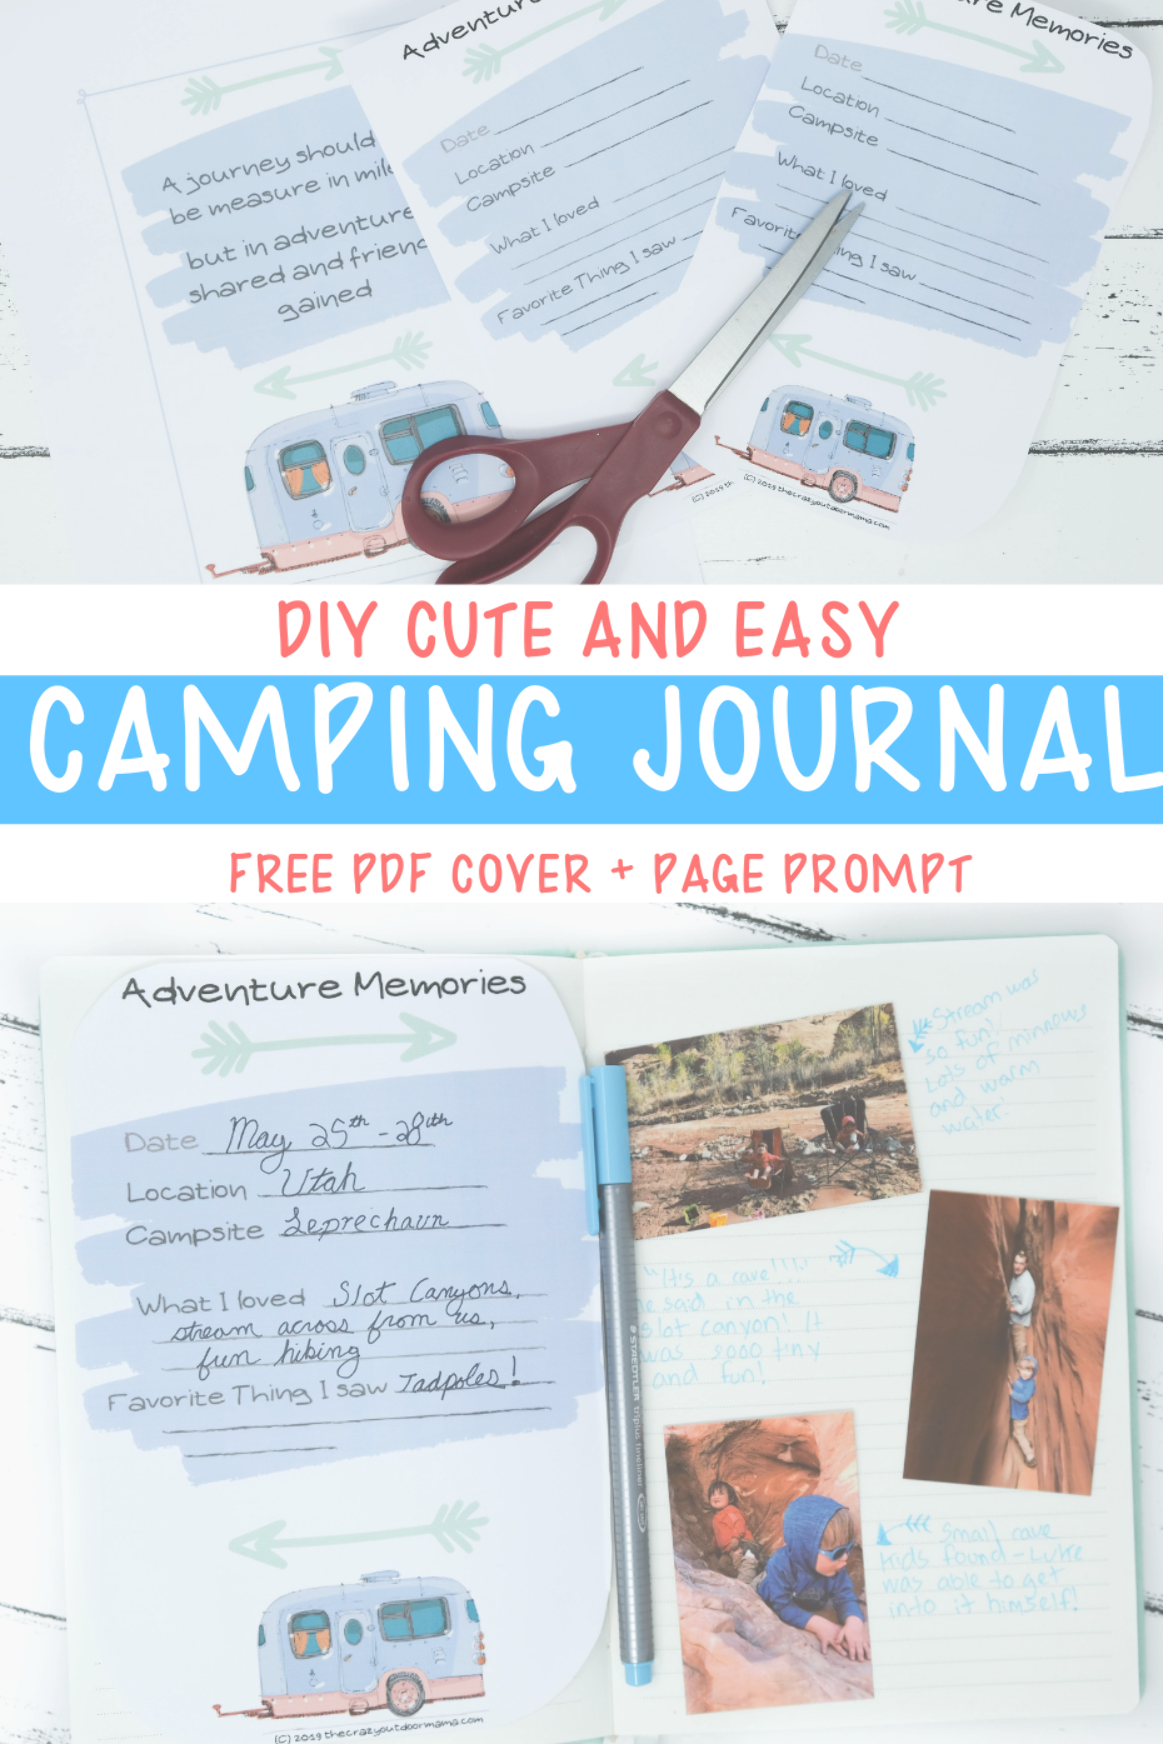 Remember all your awesome camp trips with the kids in your very own DIY camping journal! With a cut